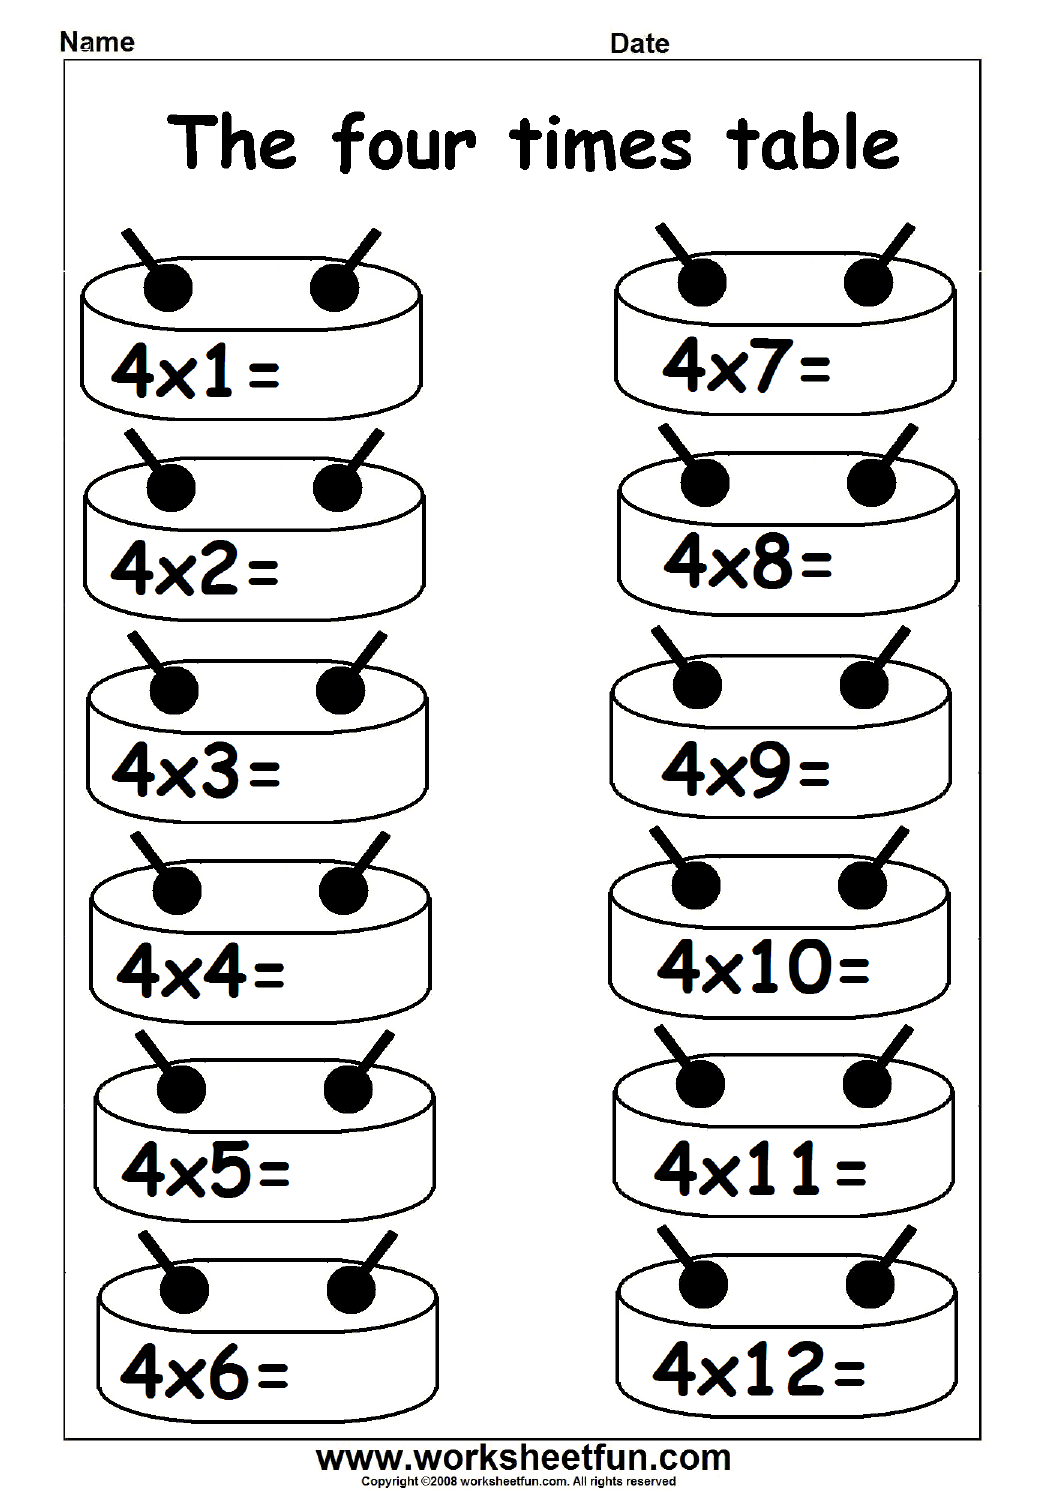 Multiplication Times Table Practice - 2-12 Times Table